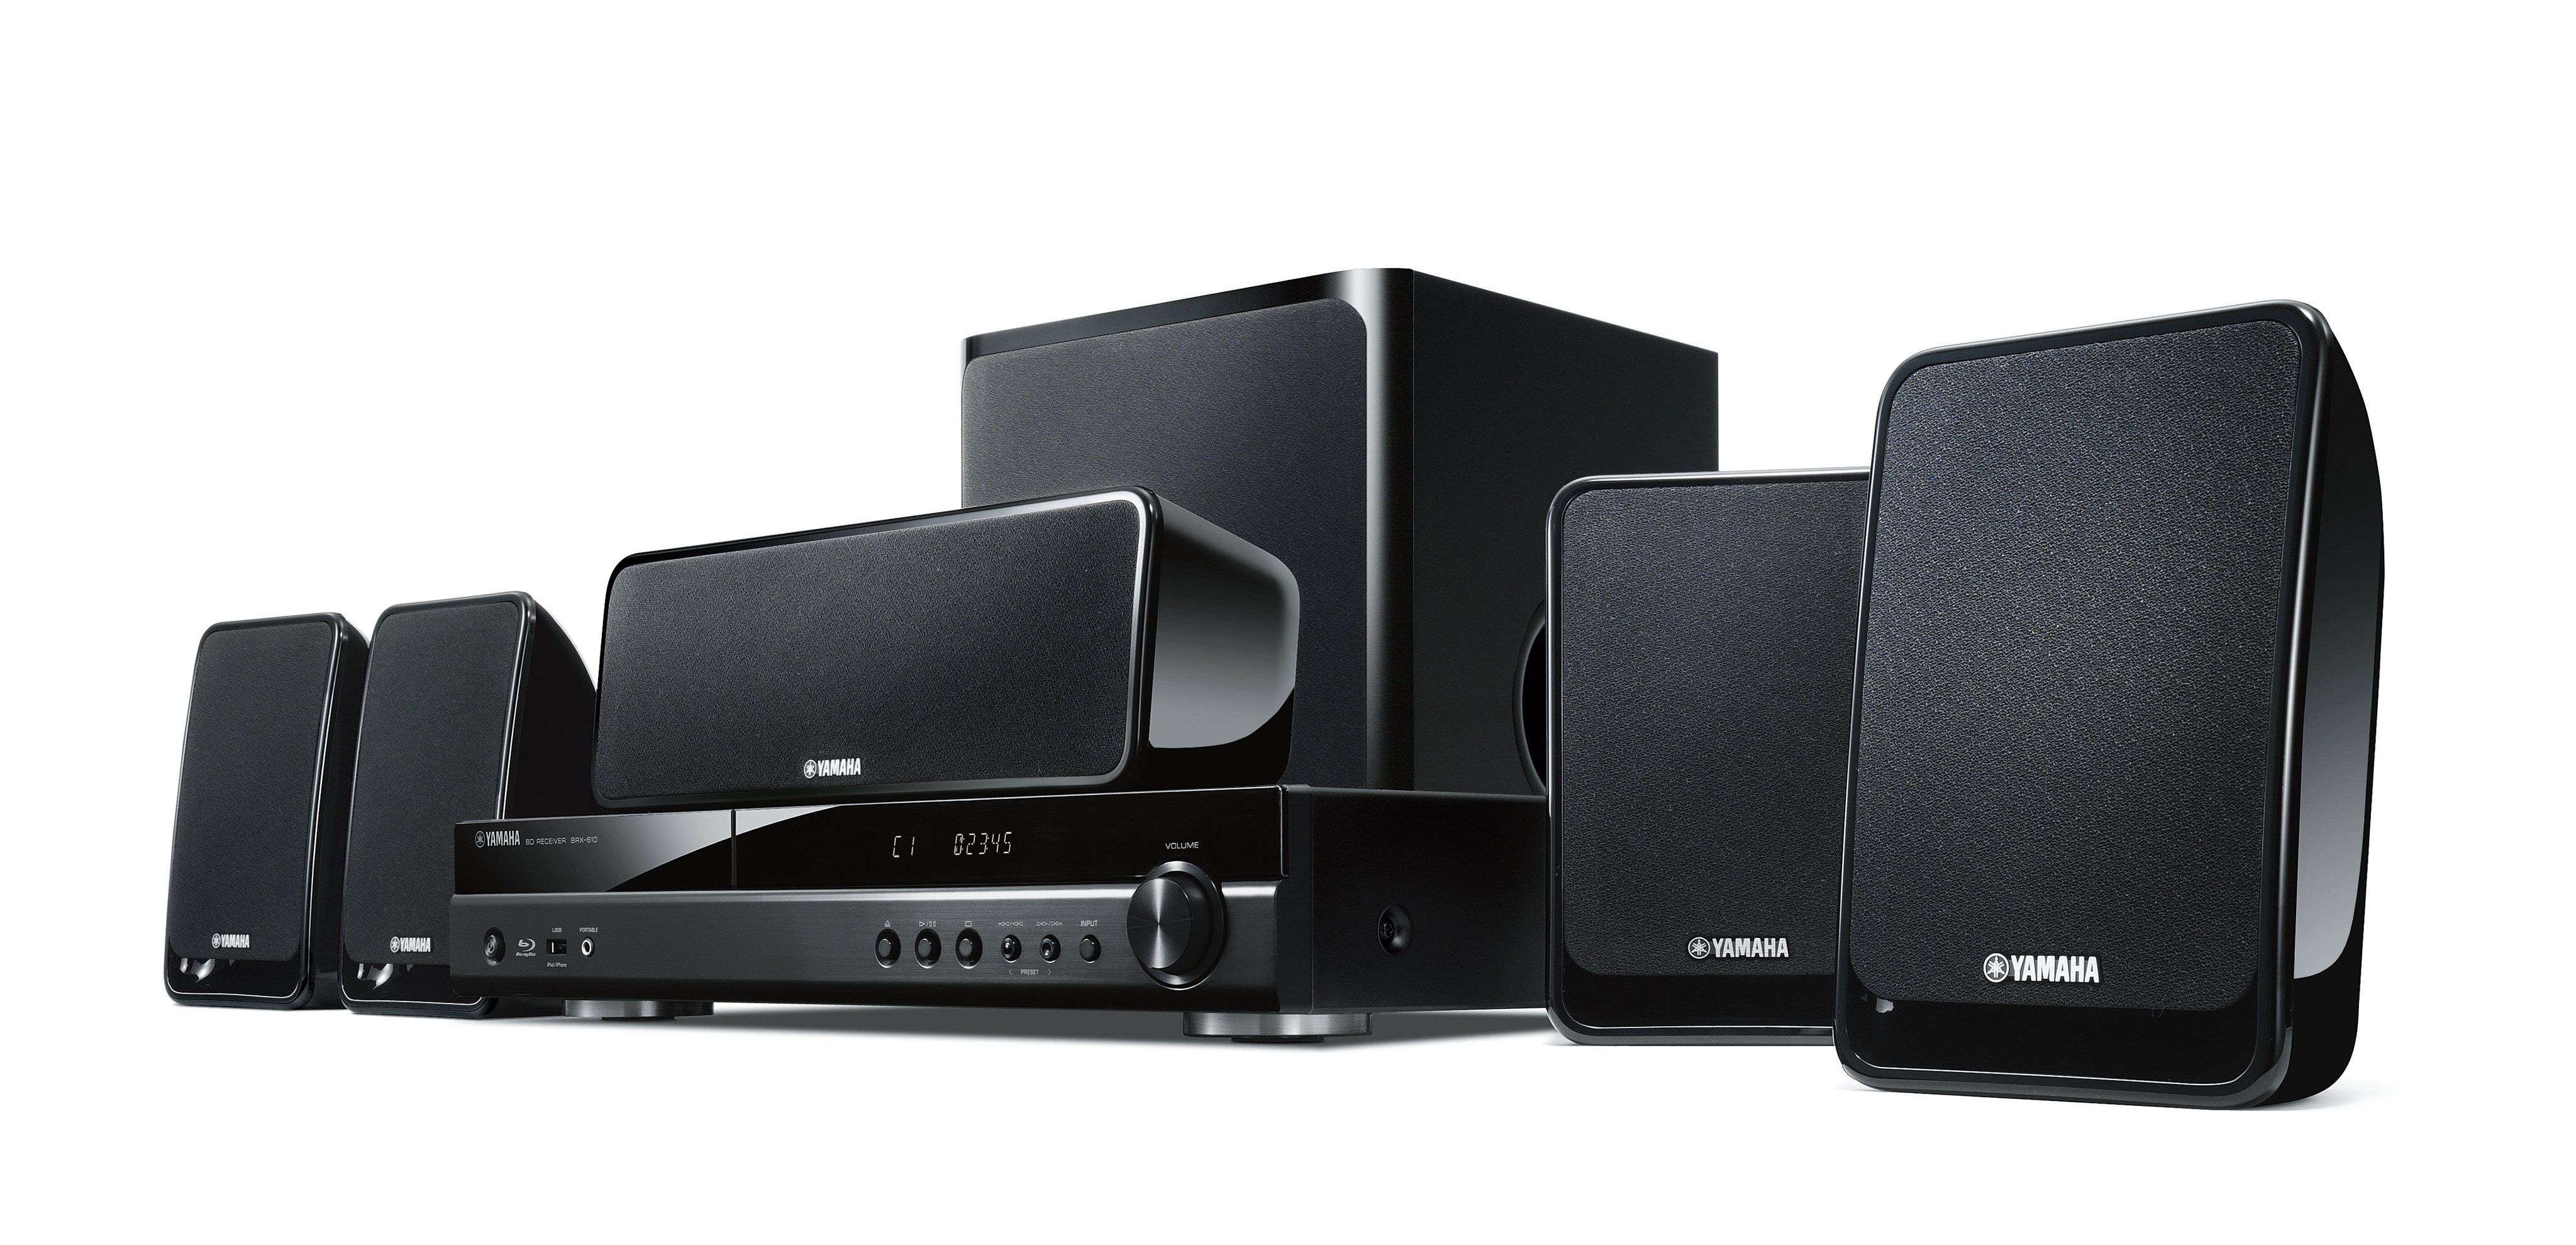 samsung home theater 2013. bdx-610 discontinued samsung home theater 2013